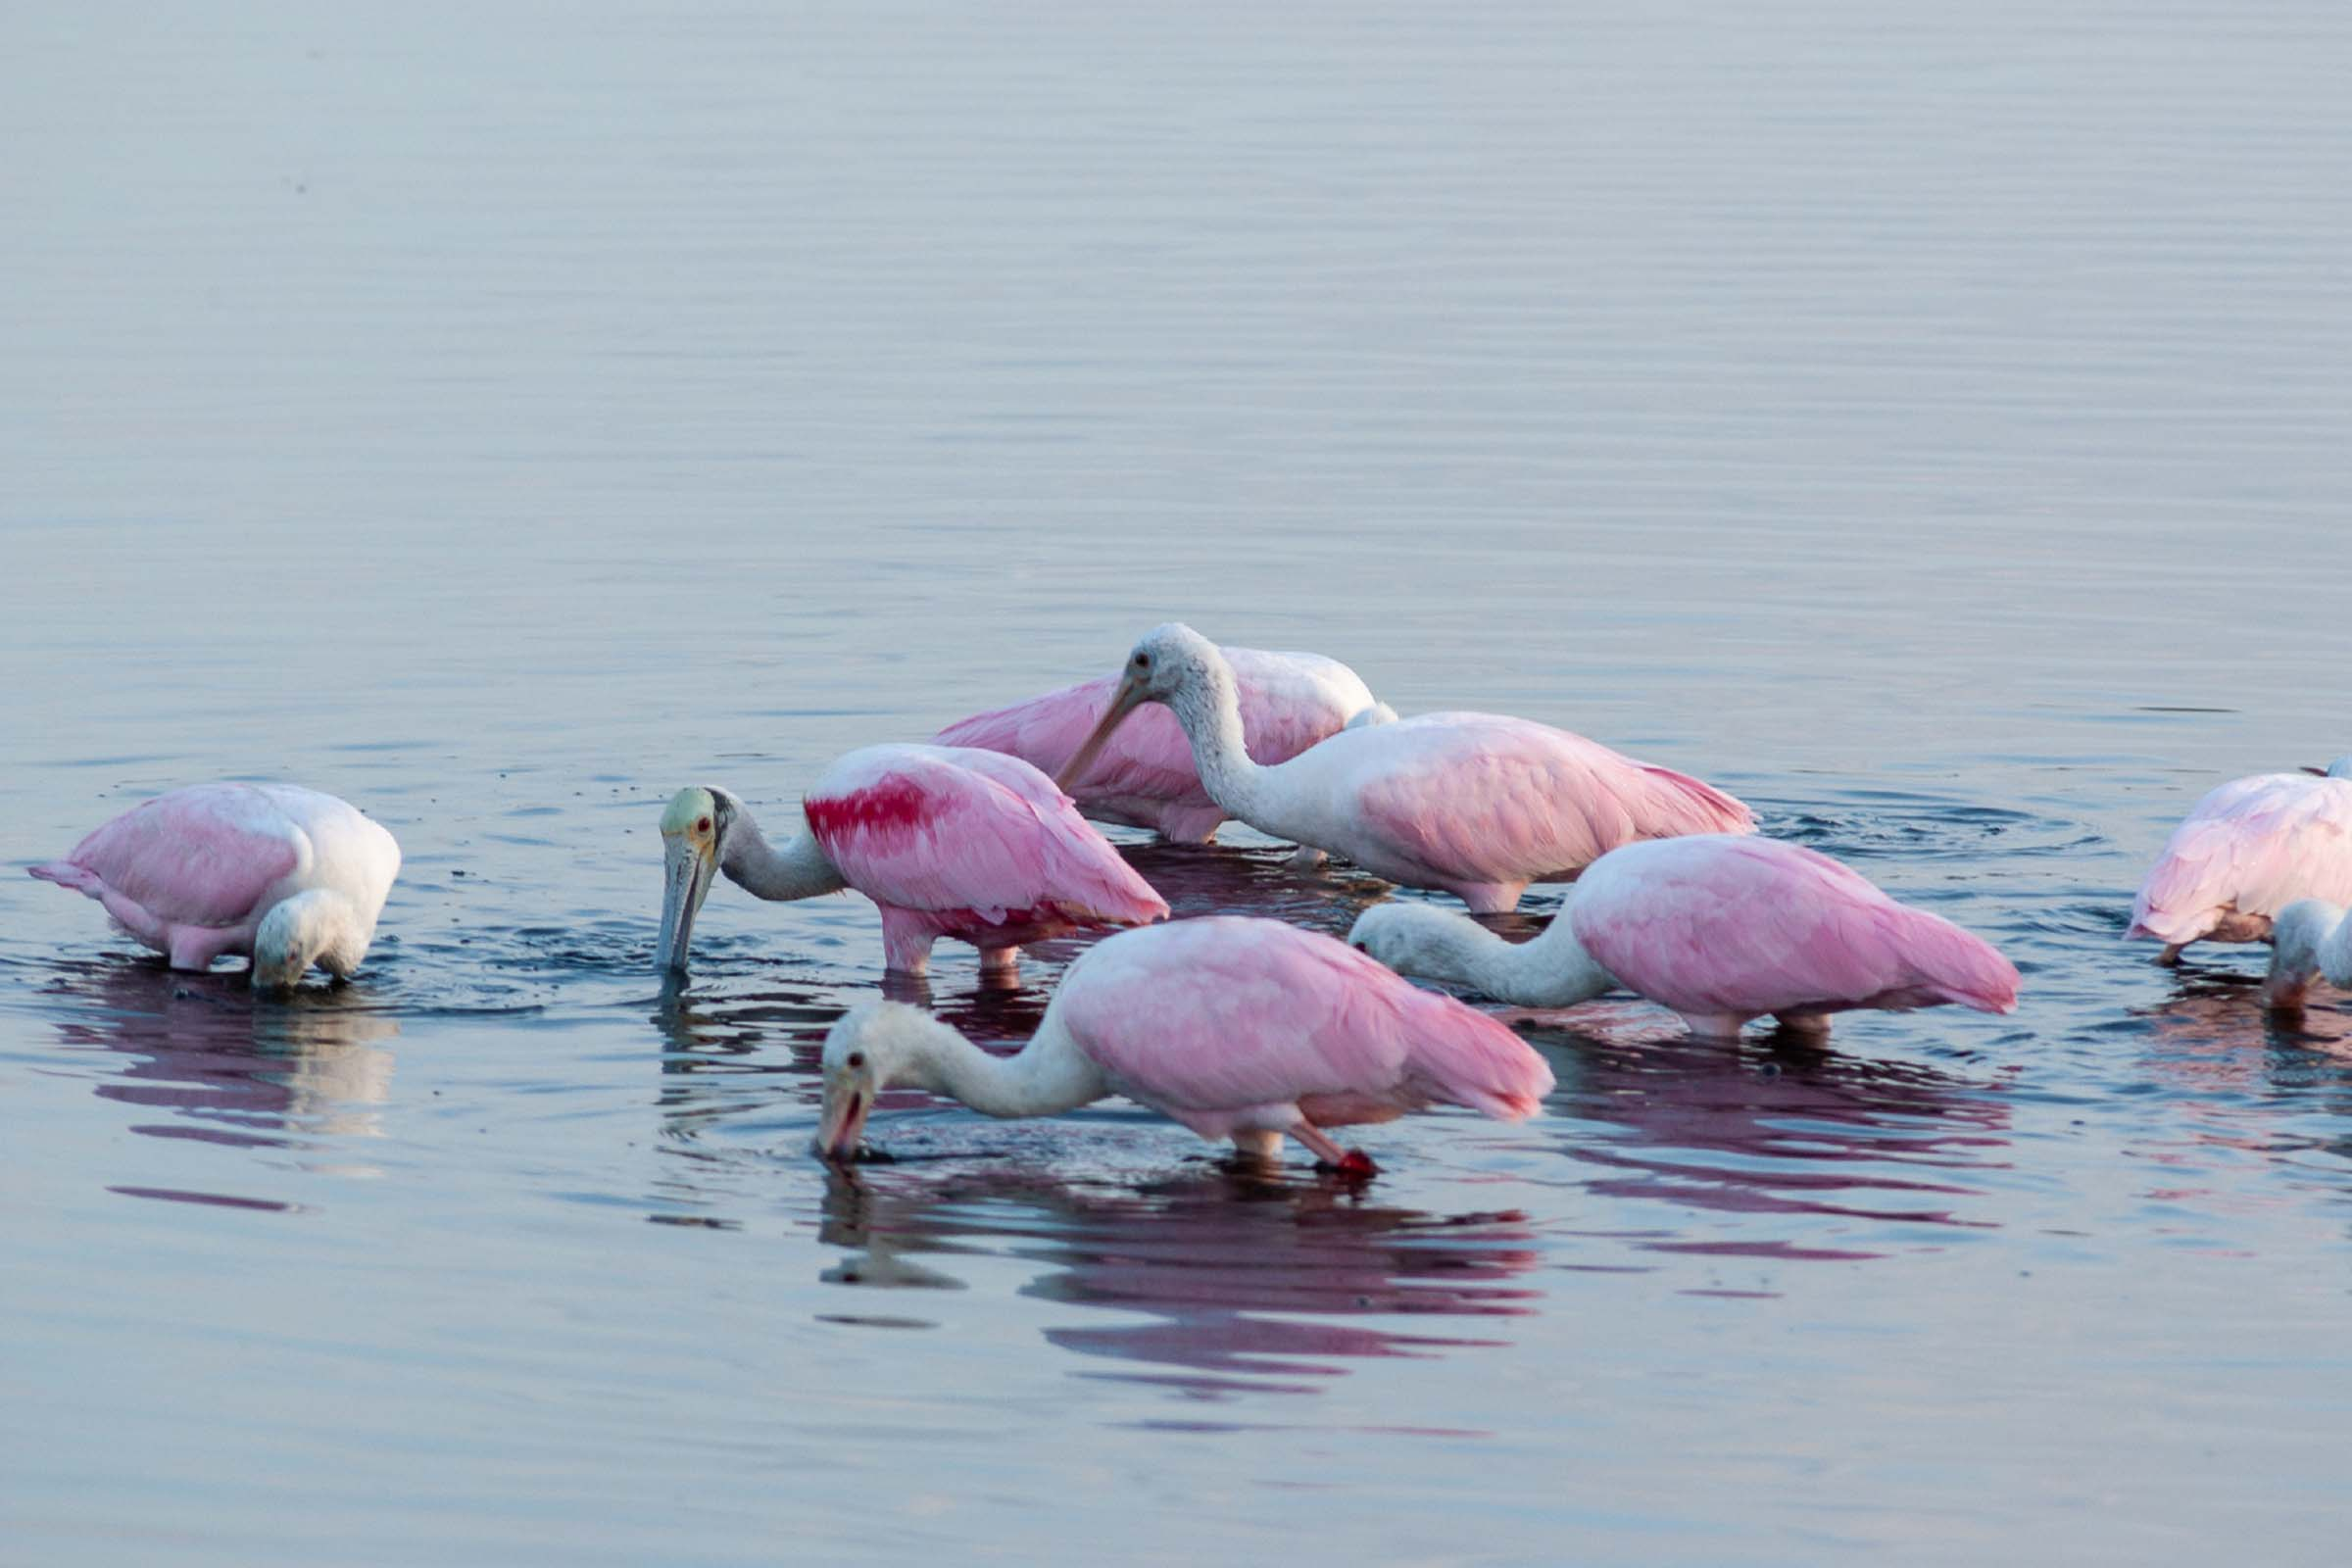 Pink birds feeding is shallow water